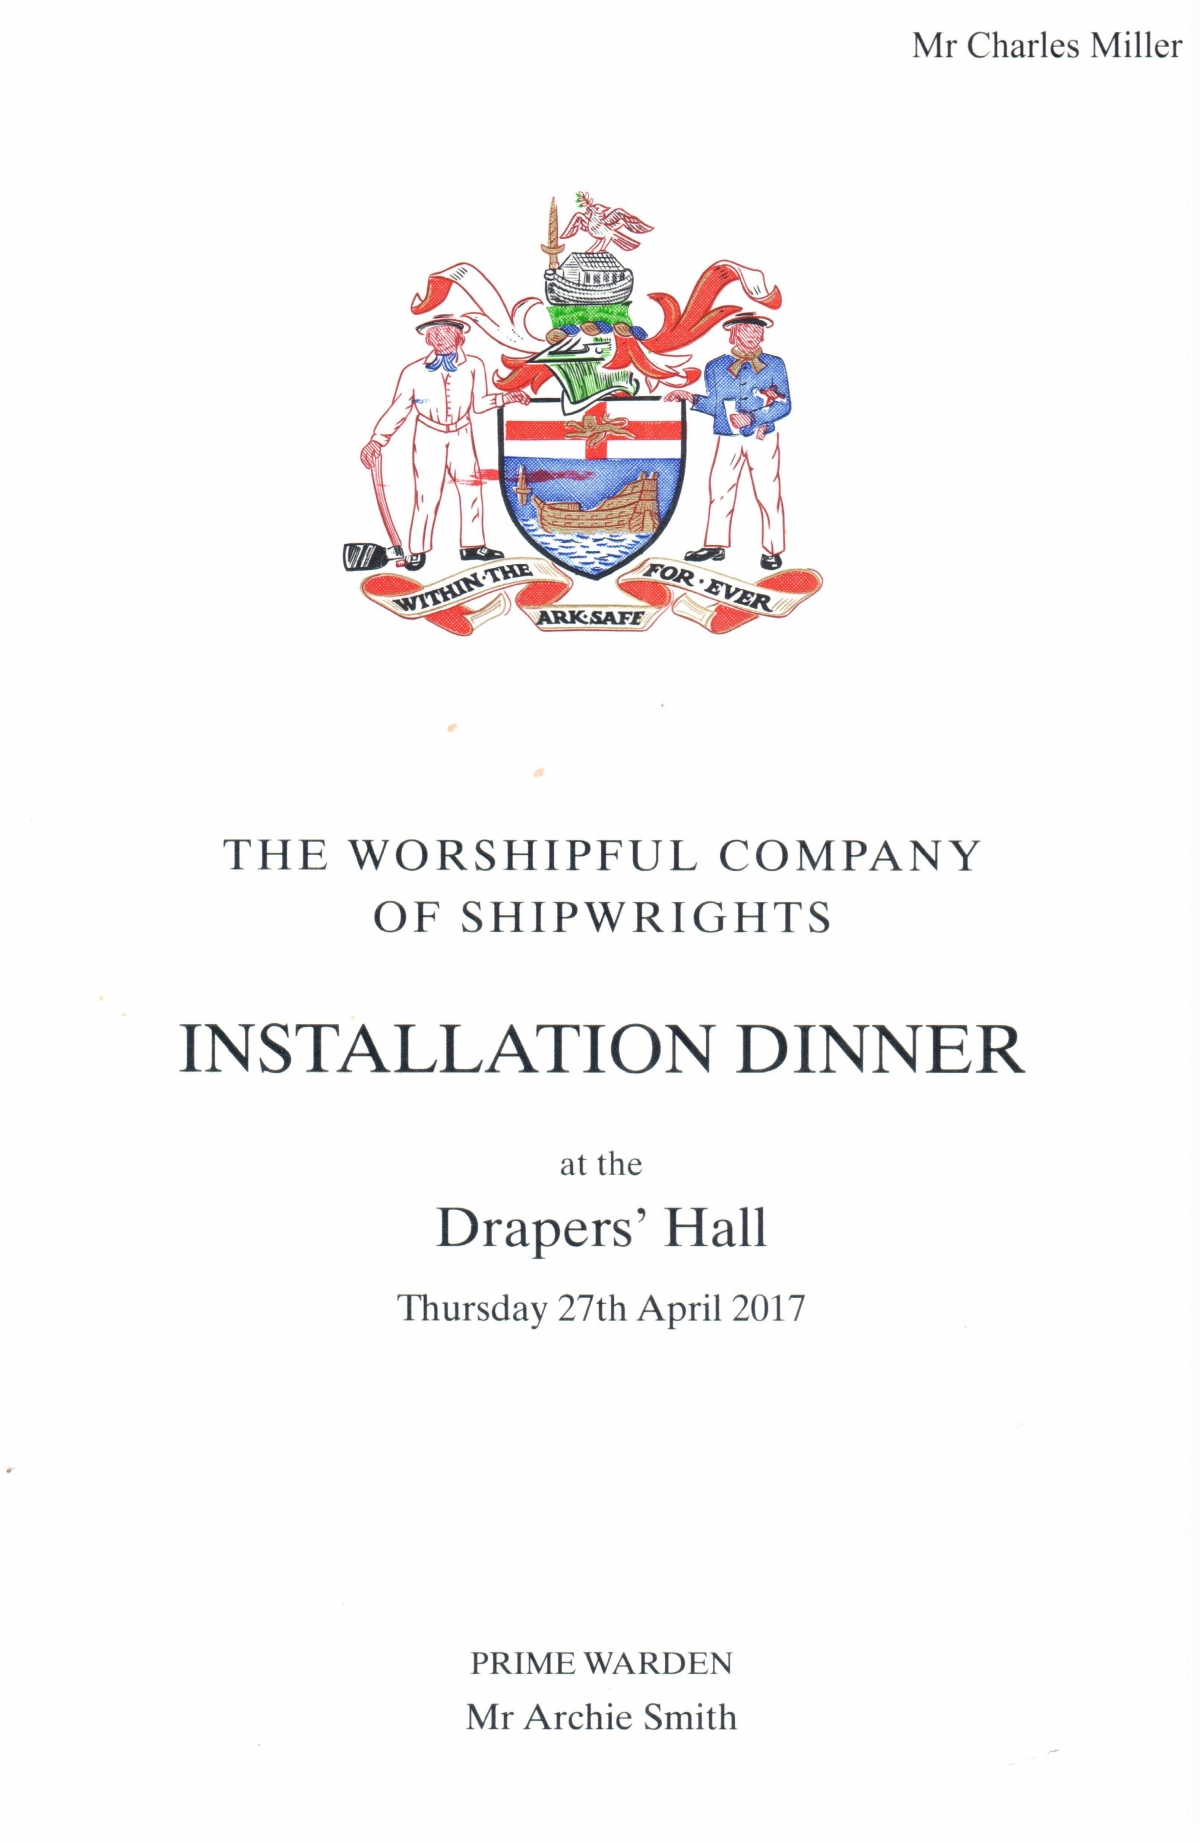 Shipwrights' Installation Banquet, Drapers' Hall